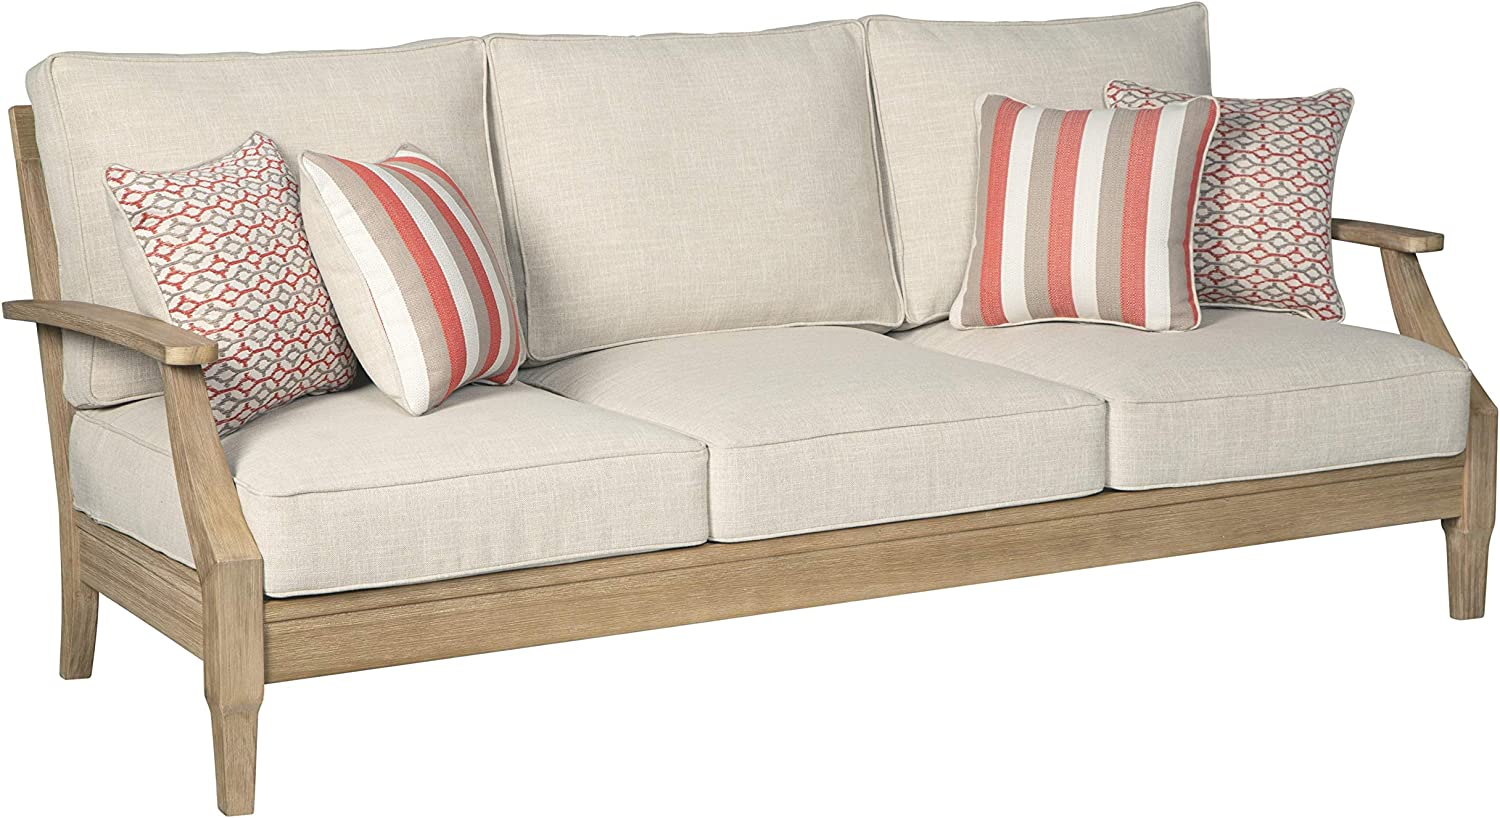 Signature Design by Ashley - Clare View Sofa with Cushion - Eucalyptus Wood Frame - Beige